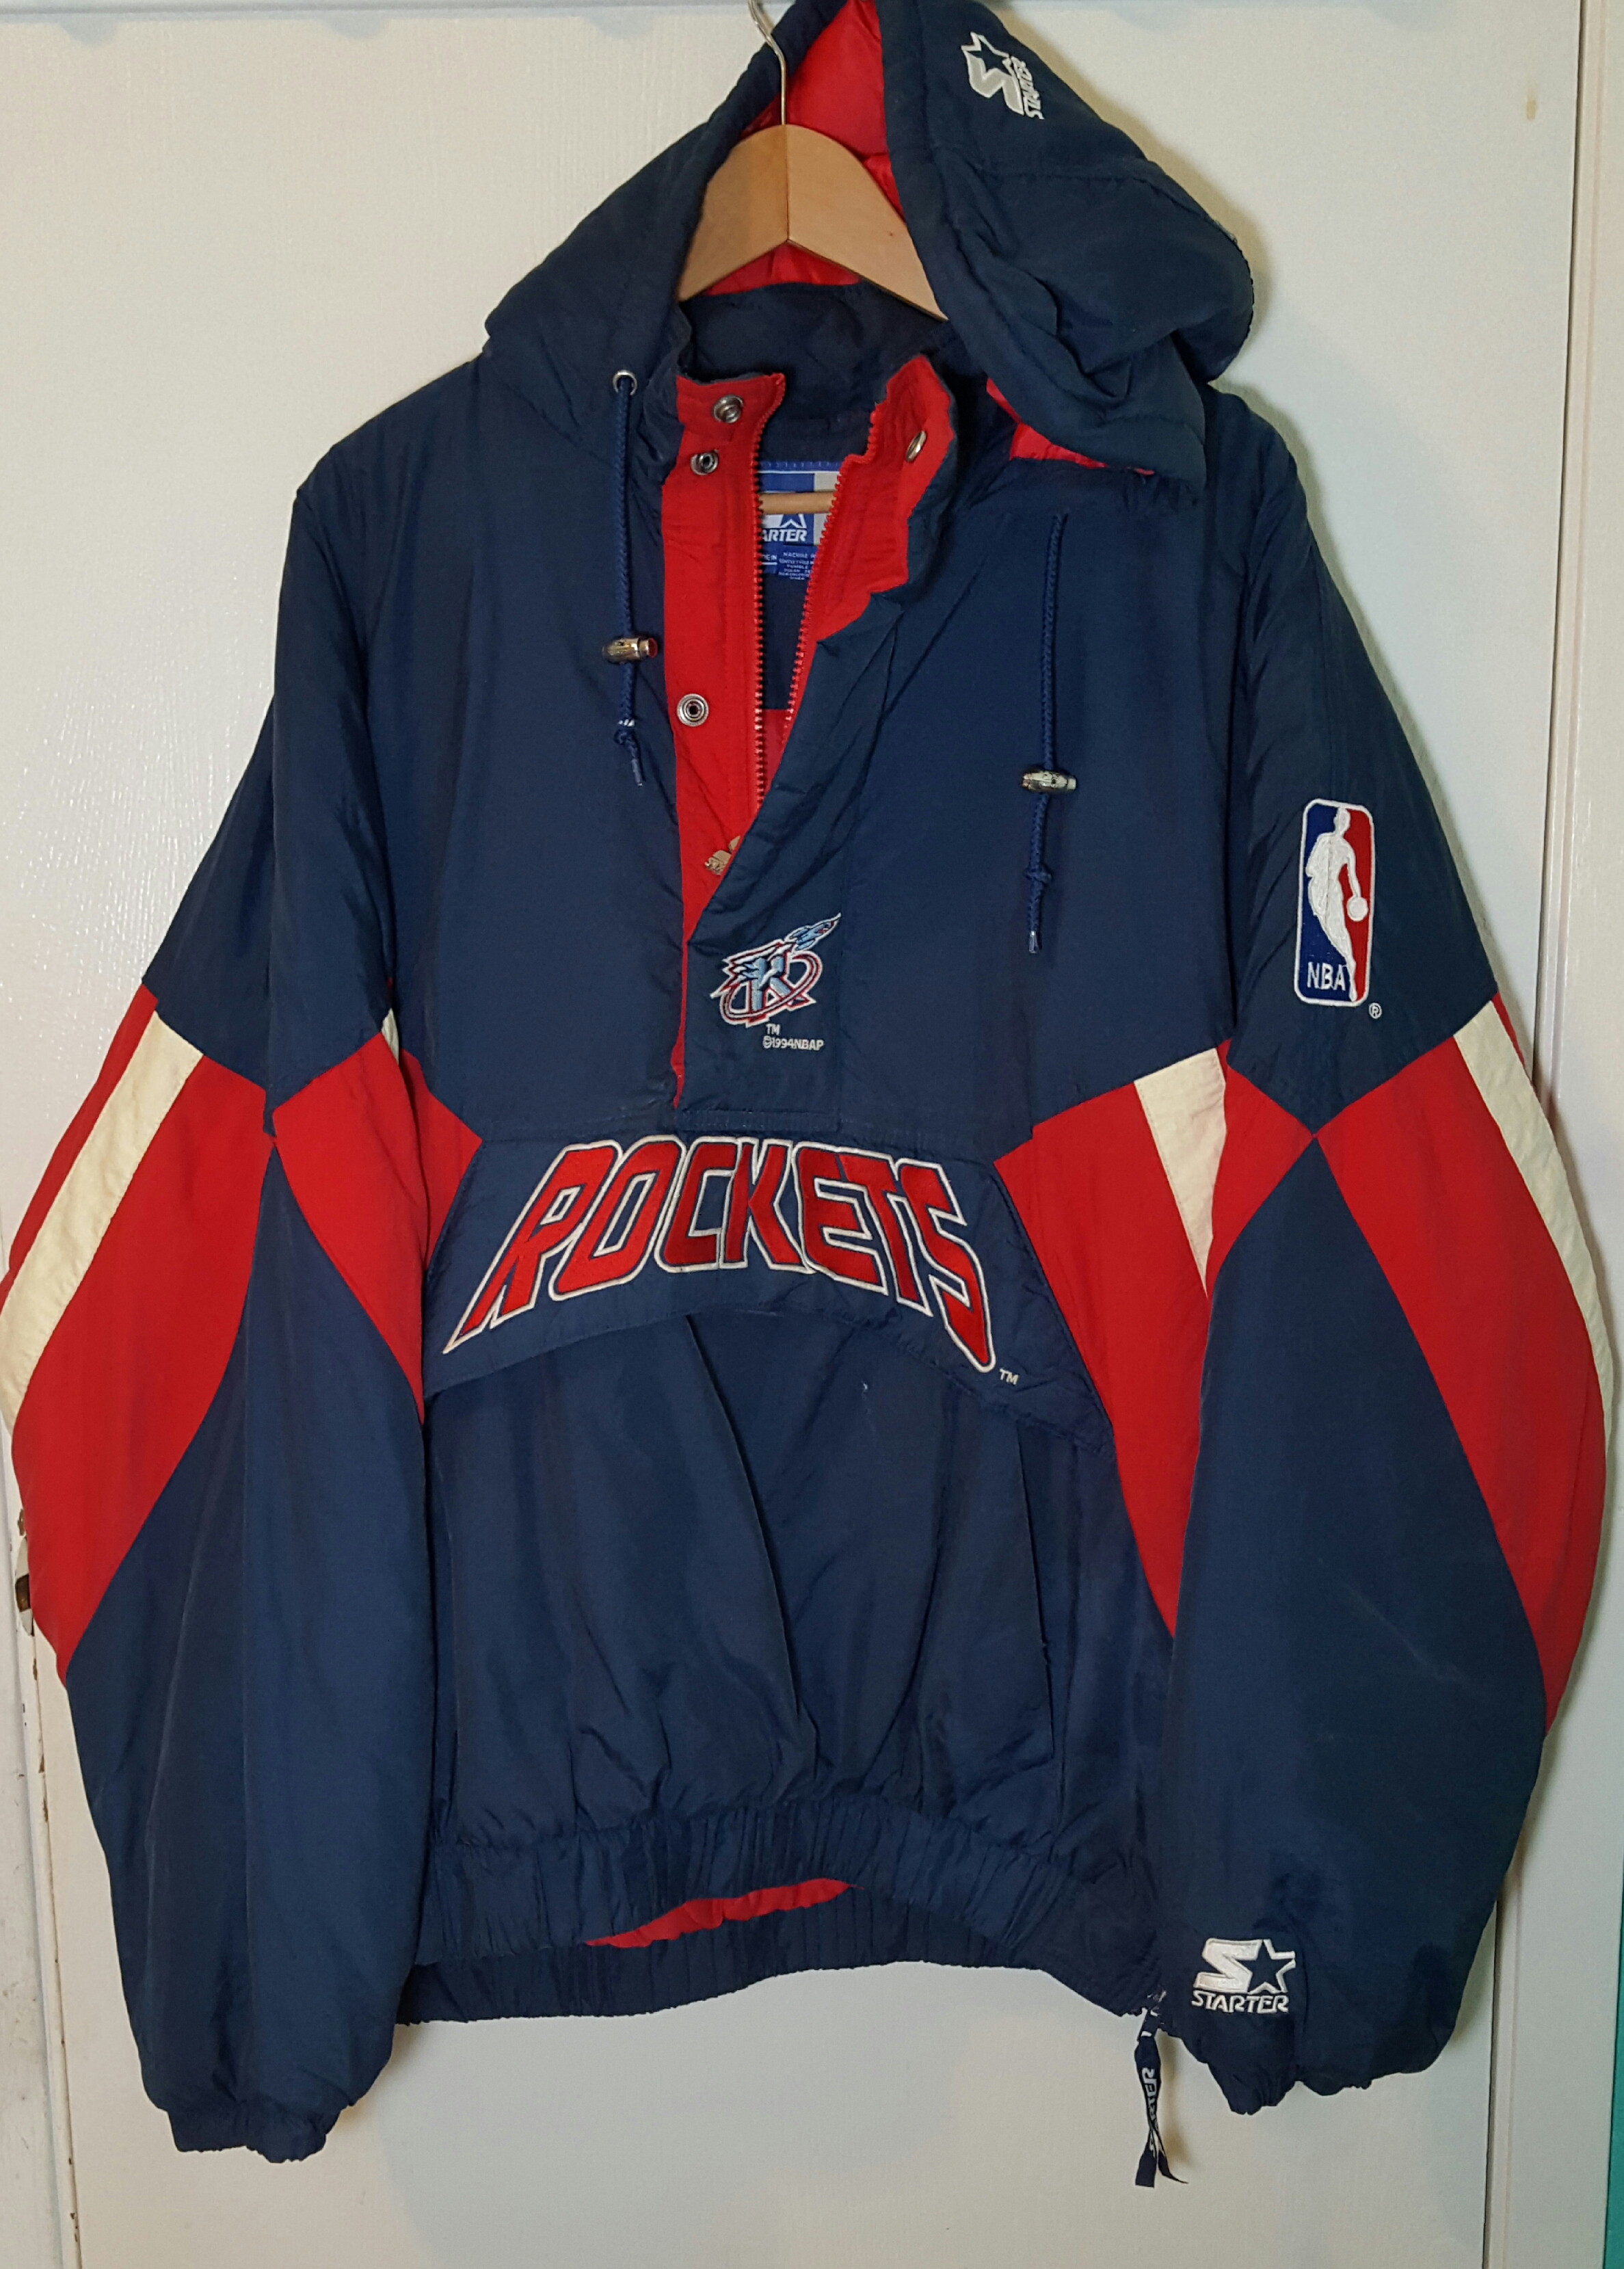 4b65e4d015c Vintage Vintage 1994 NBA Houston Rockets Starter quarter zip jacket ...